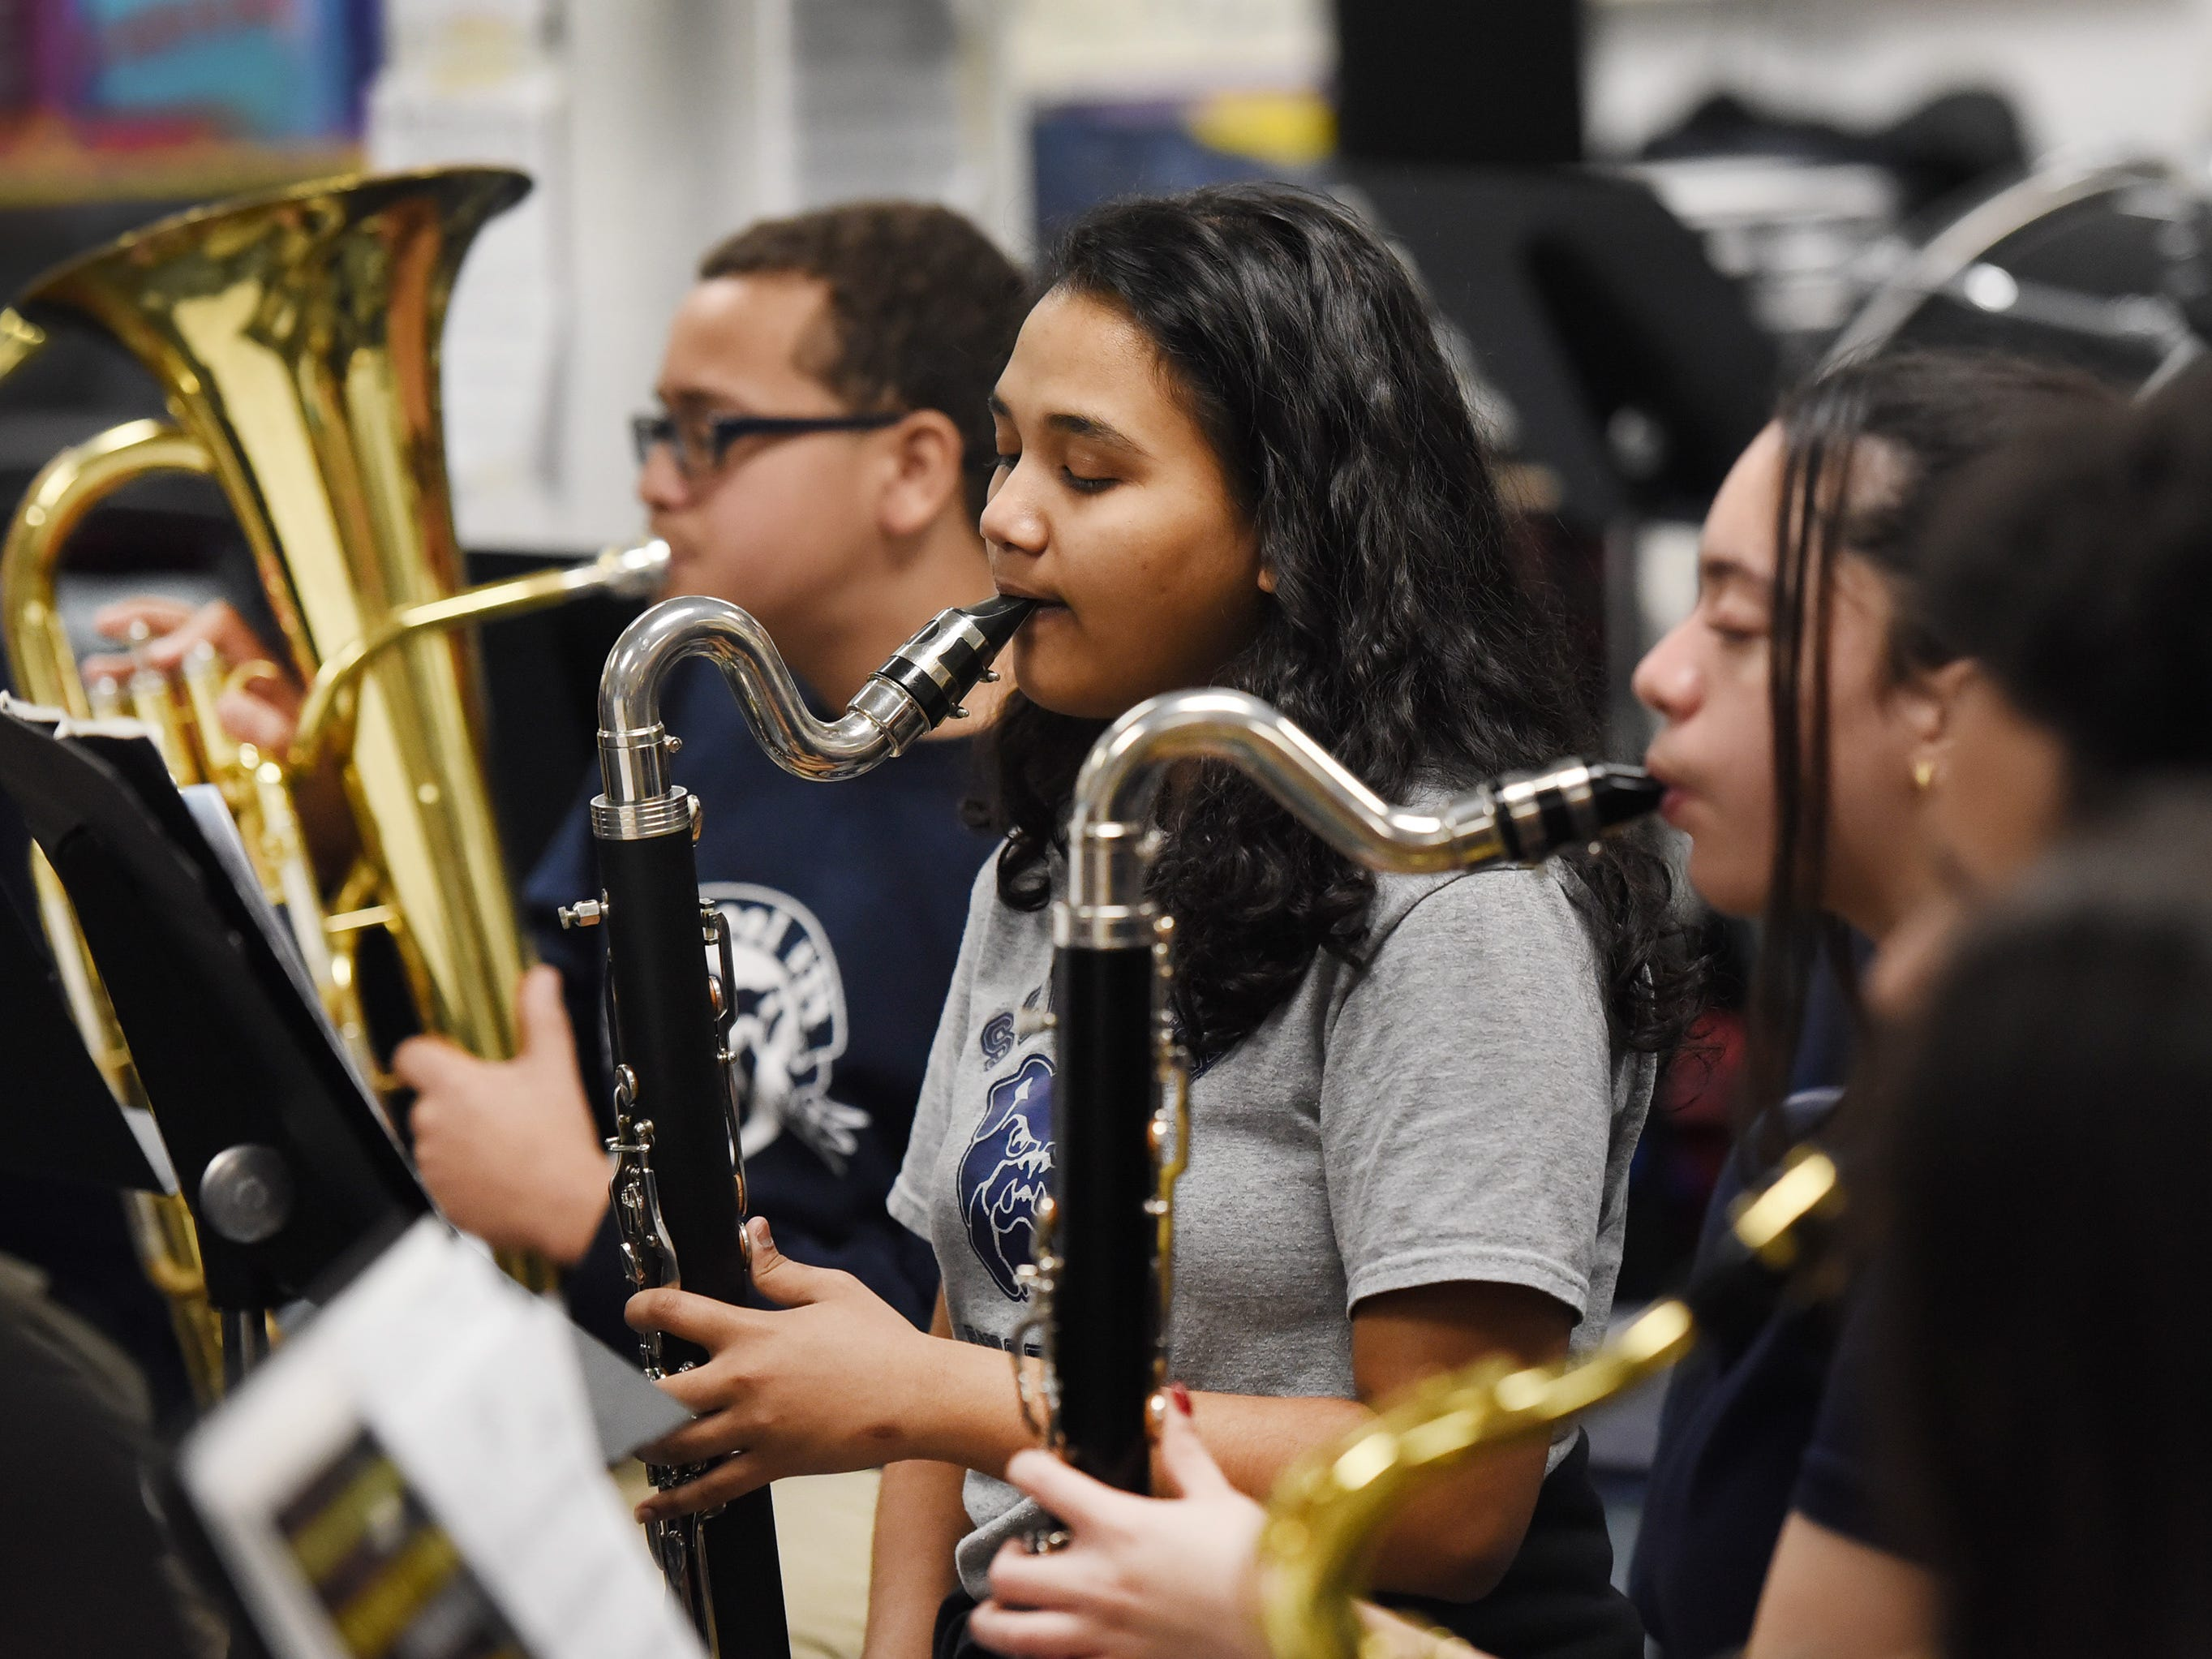 Eighth grader Papiya Malik plays her bass clarinet as they practice led by the Band Director Nancy Horowitz during a music class at School #24 in Paterson on 01/09/19.